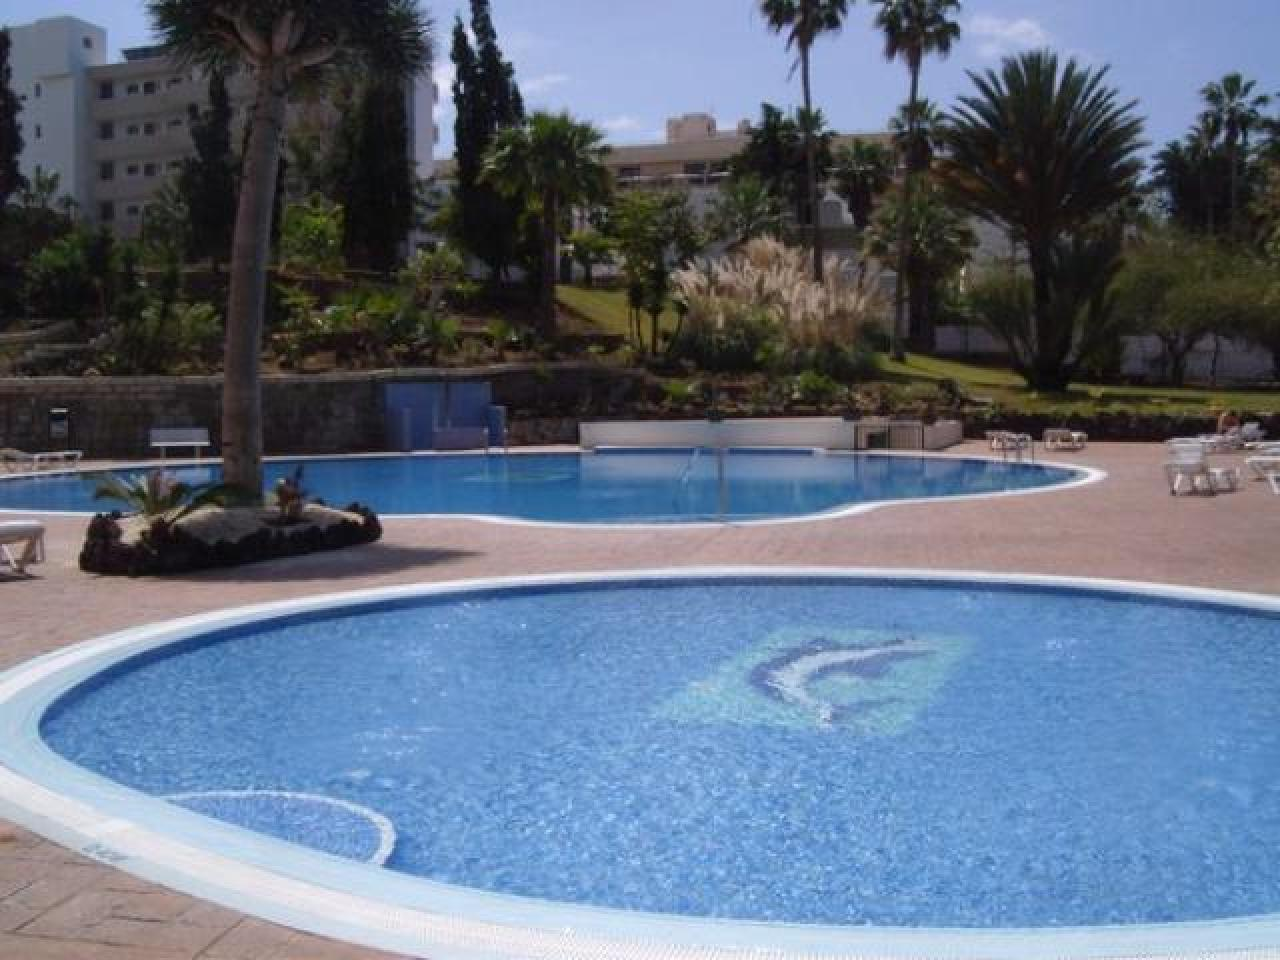 Real estate in Tenerife for rent - 4